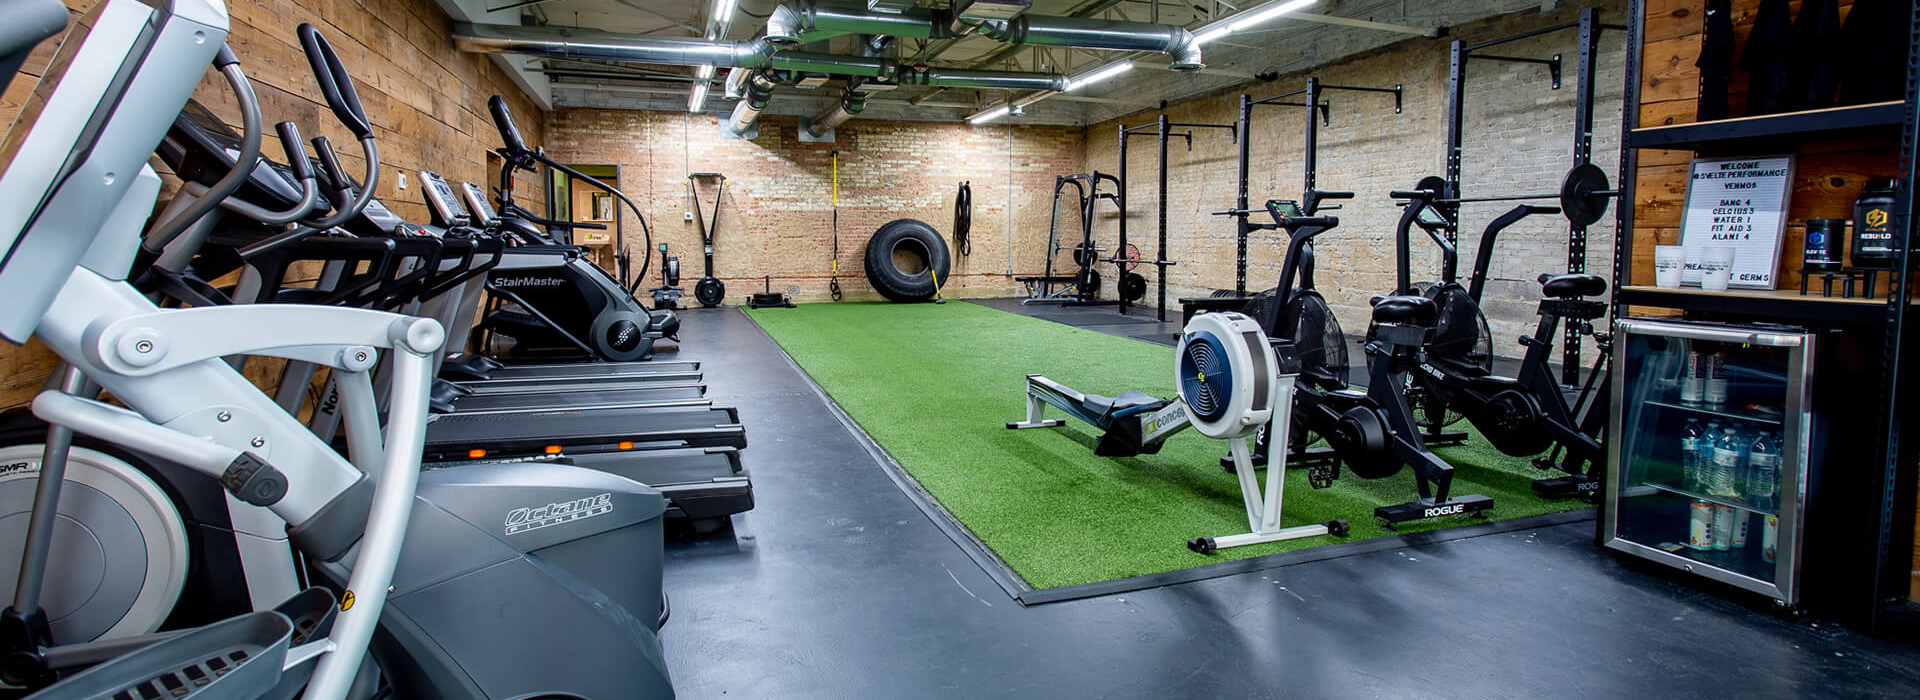 Top 5 Best Gyms To Join Near Me In Deep Ellum, TX